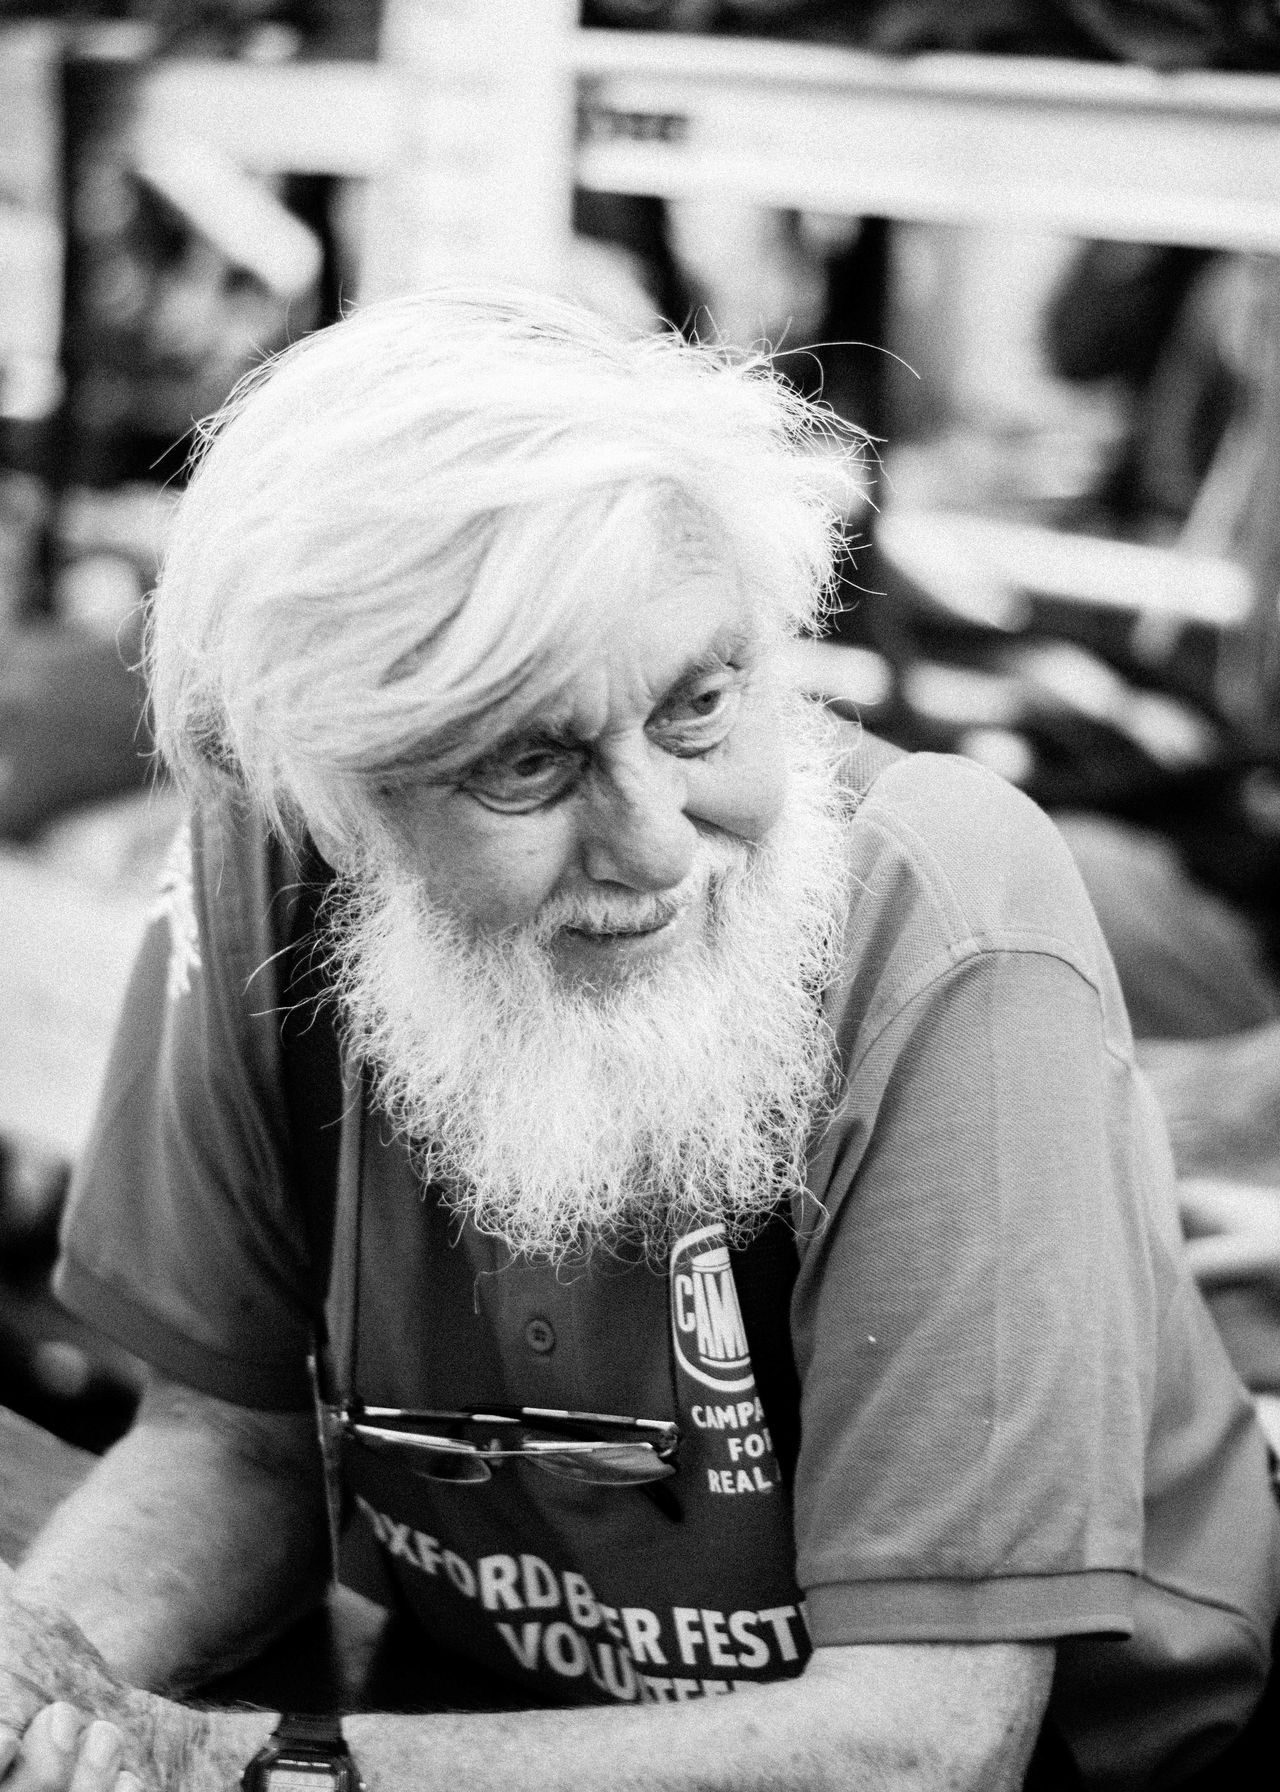 Beard Blackandwhite Focus On Foreground Front View Lifestyles Old Age Person Portrait